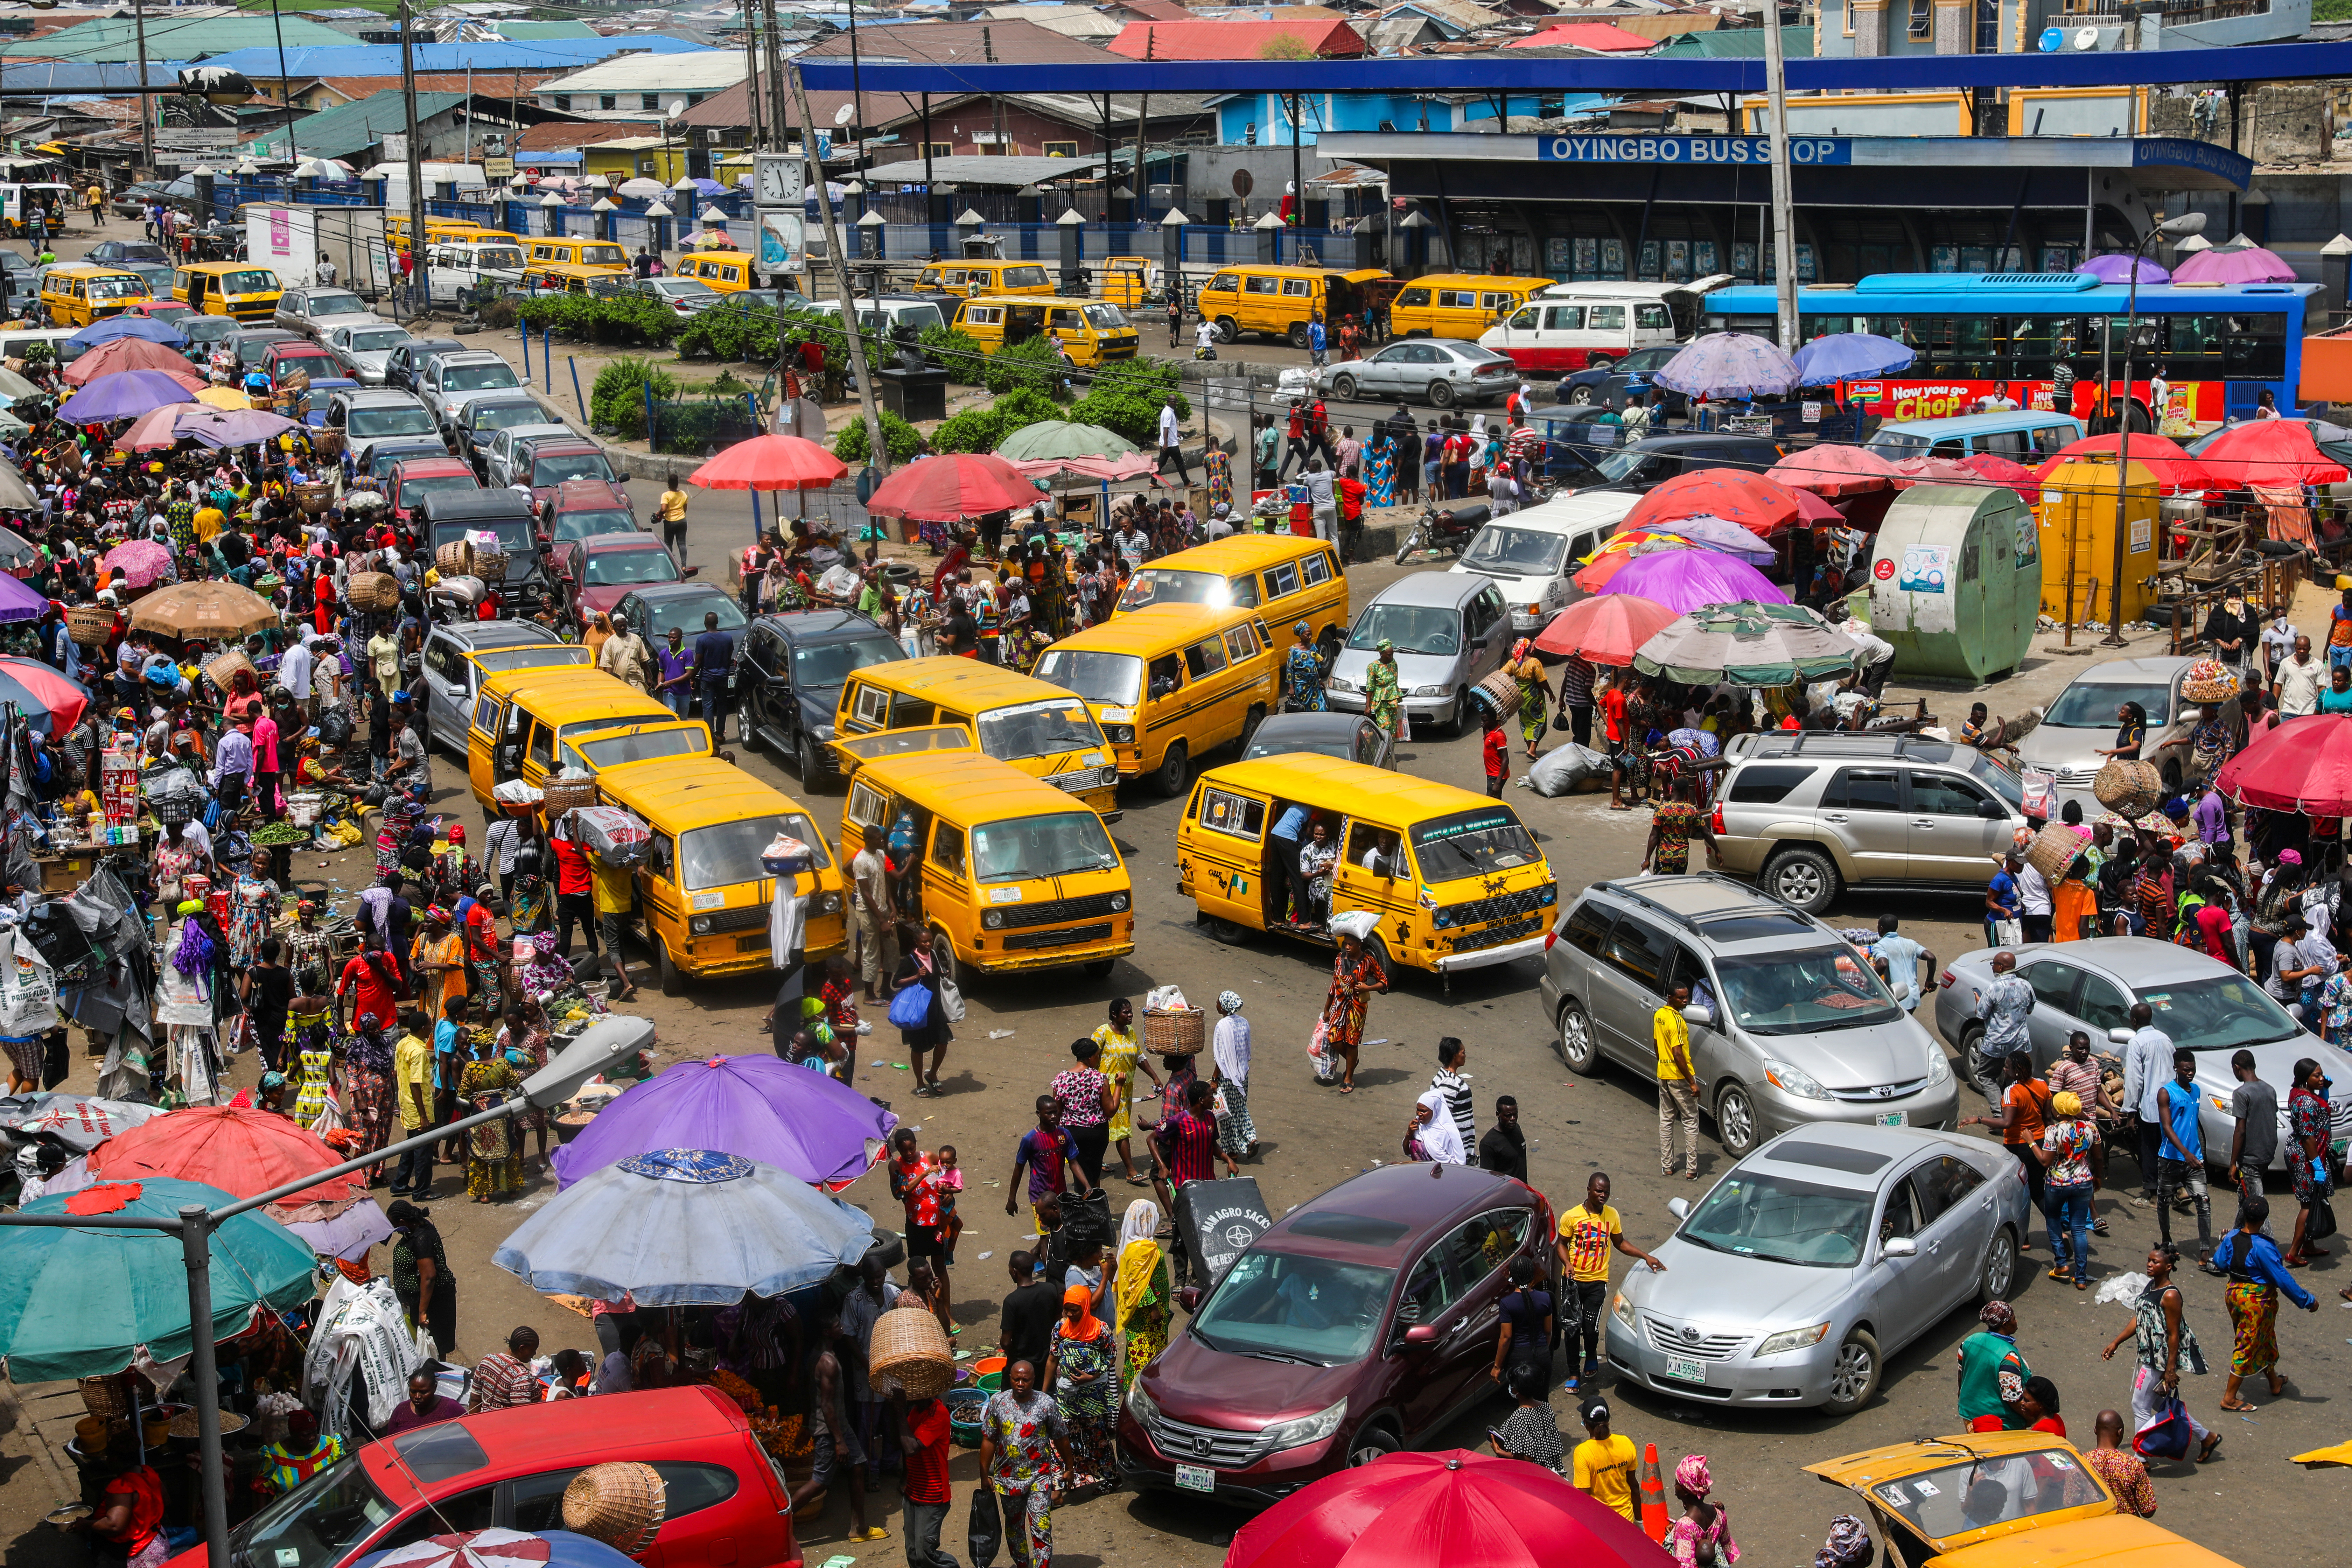 A general view of a food market after Nigeria's President Muhammadu Buhari called for a lockdown starting tonight to limit the spread of coronavirus disease (COVID-19), in Lagos, Nigeria March 30, 2020. REUTERS/Temilade Adelaja